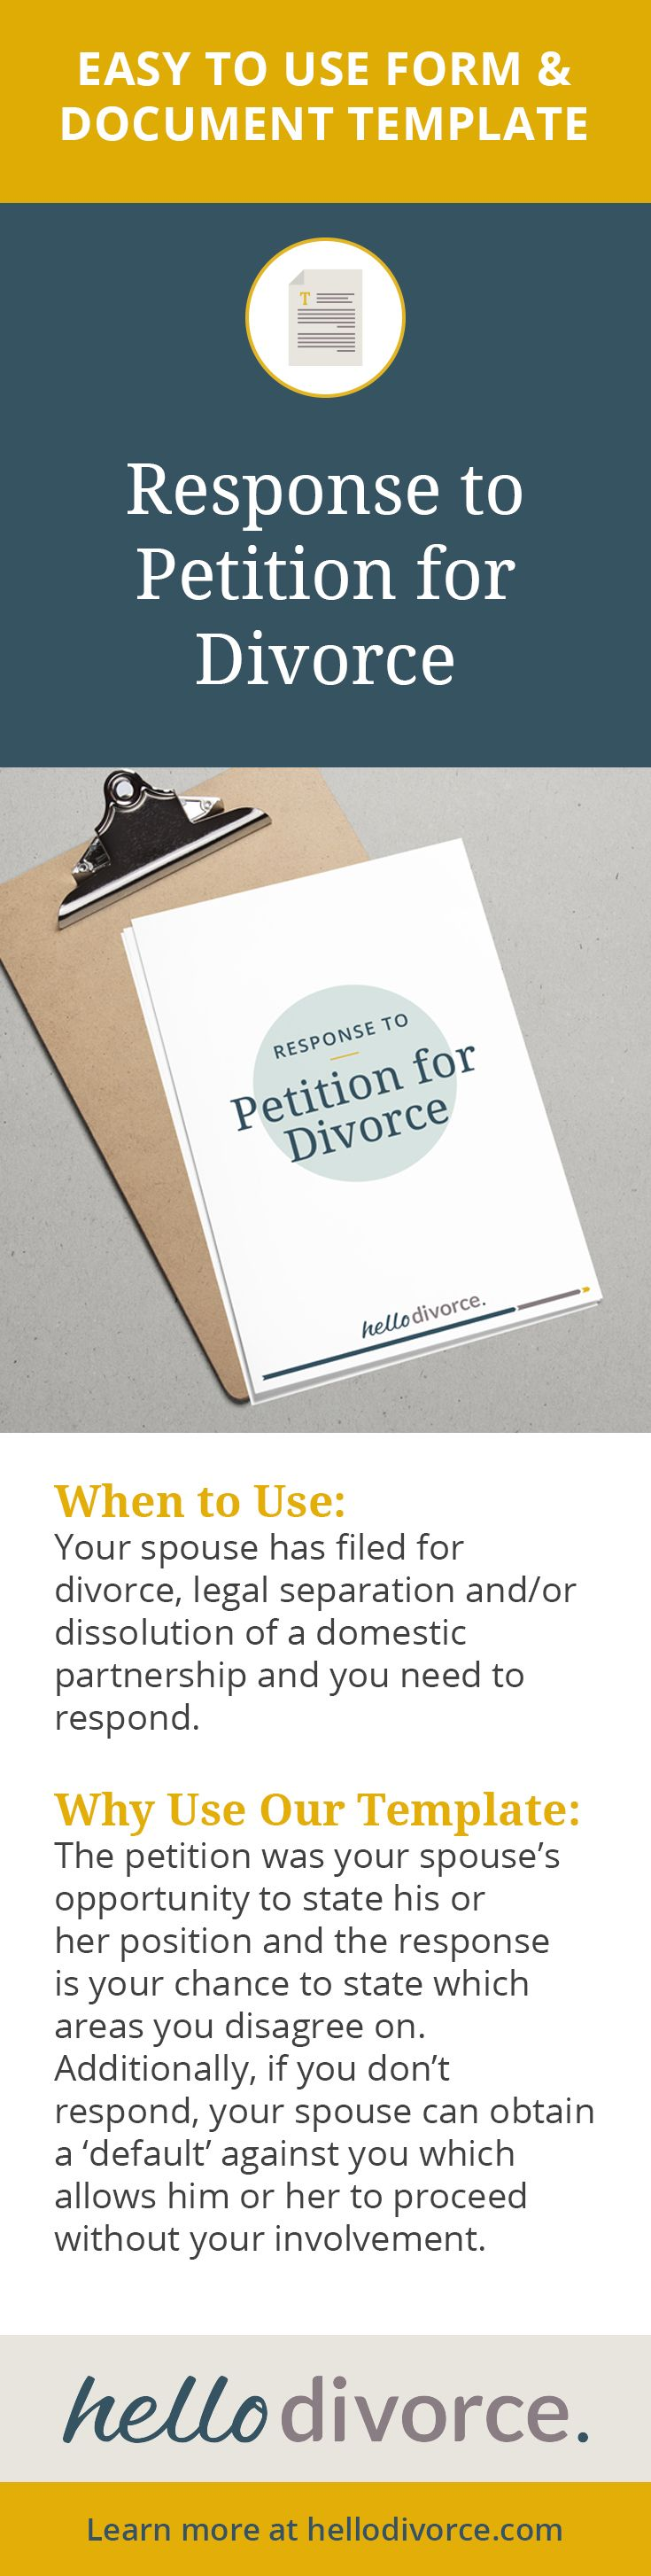 If your spouse files the initial petition for divorce it